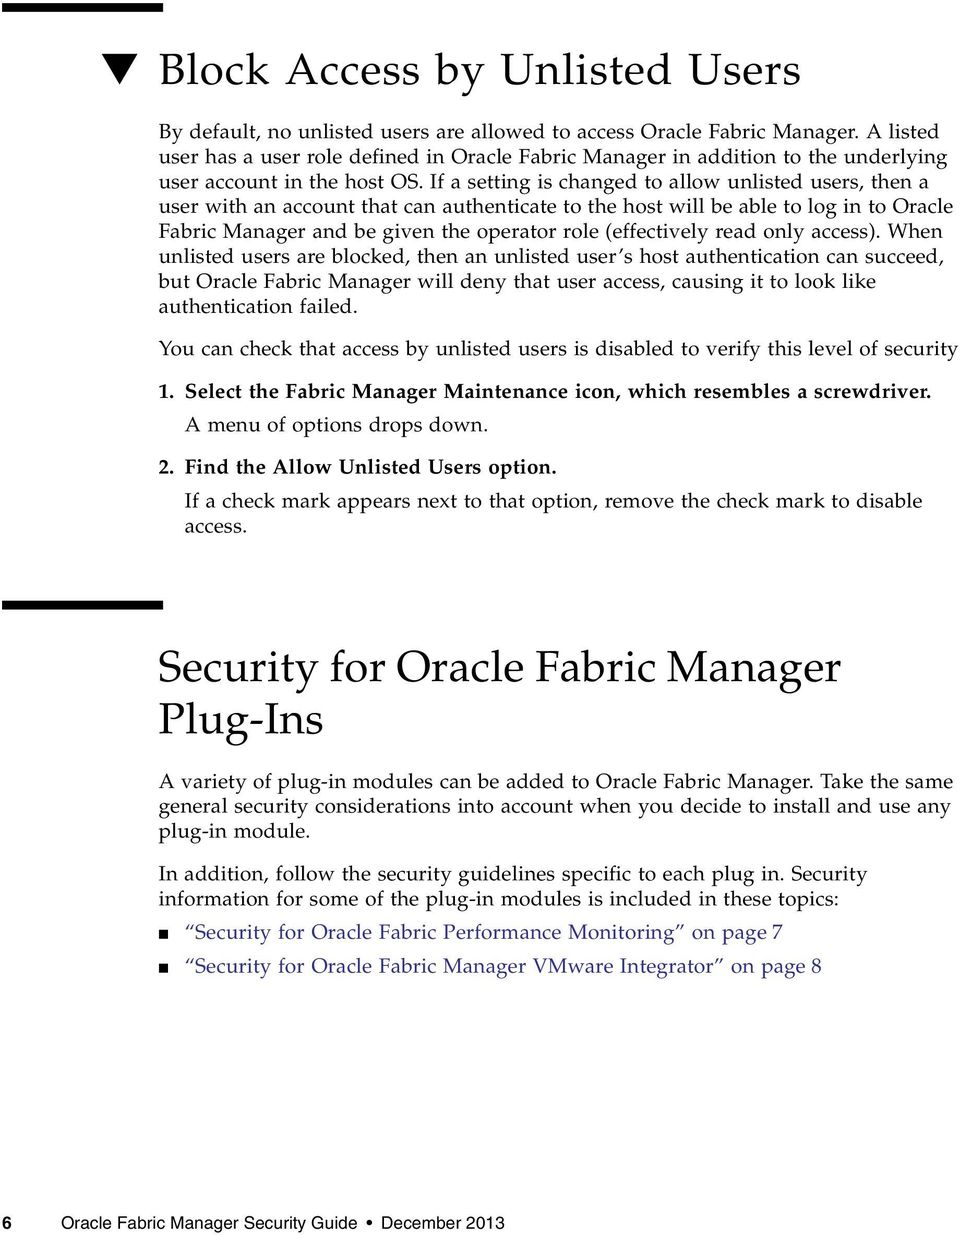 If a setting is changed to allow unlisted users, then a user with an account that can authenticate to the host will be able to log in to Oracle Fabric Manager and be given the operator role